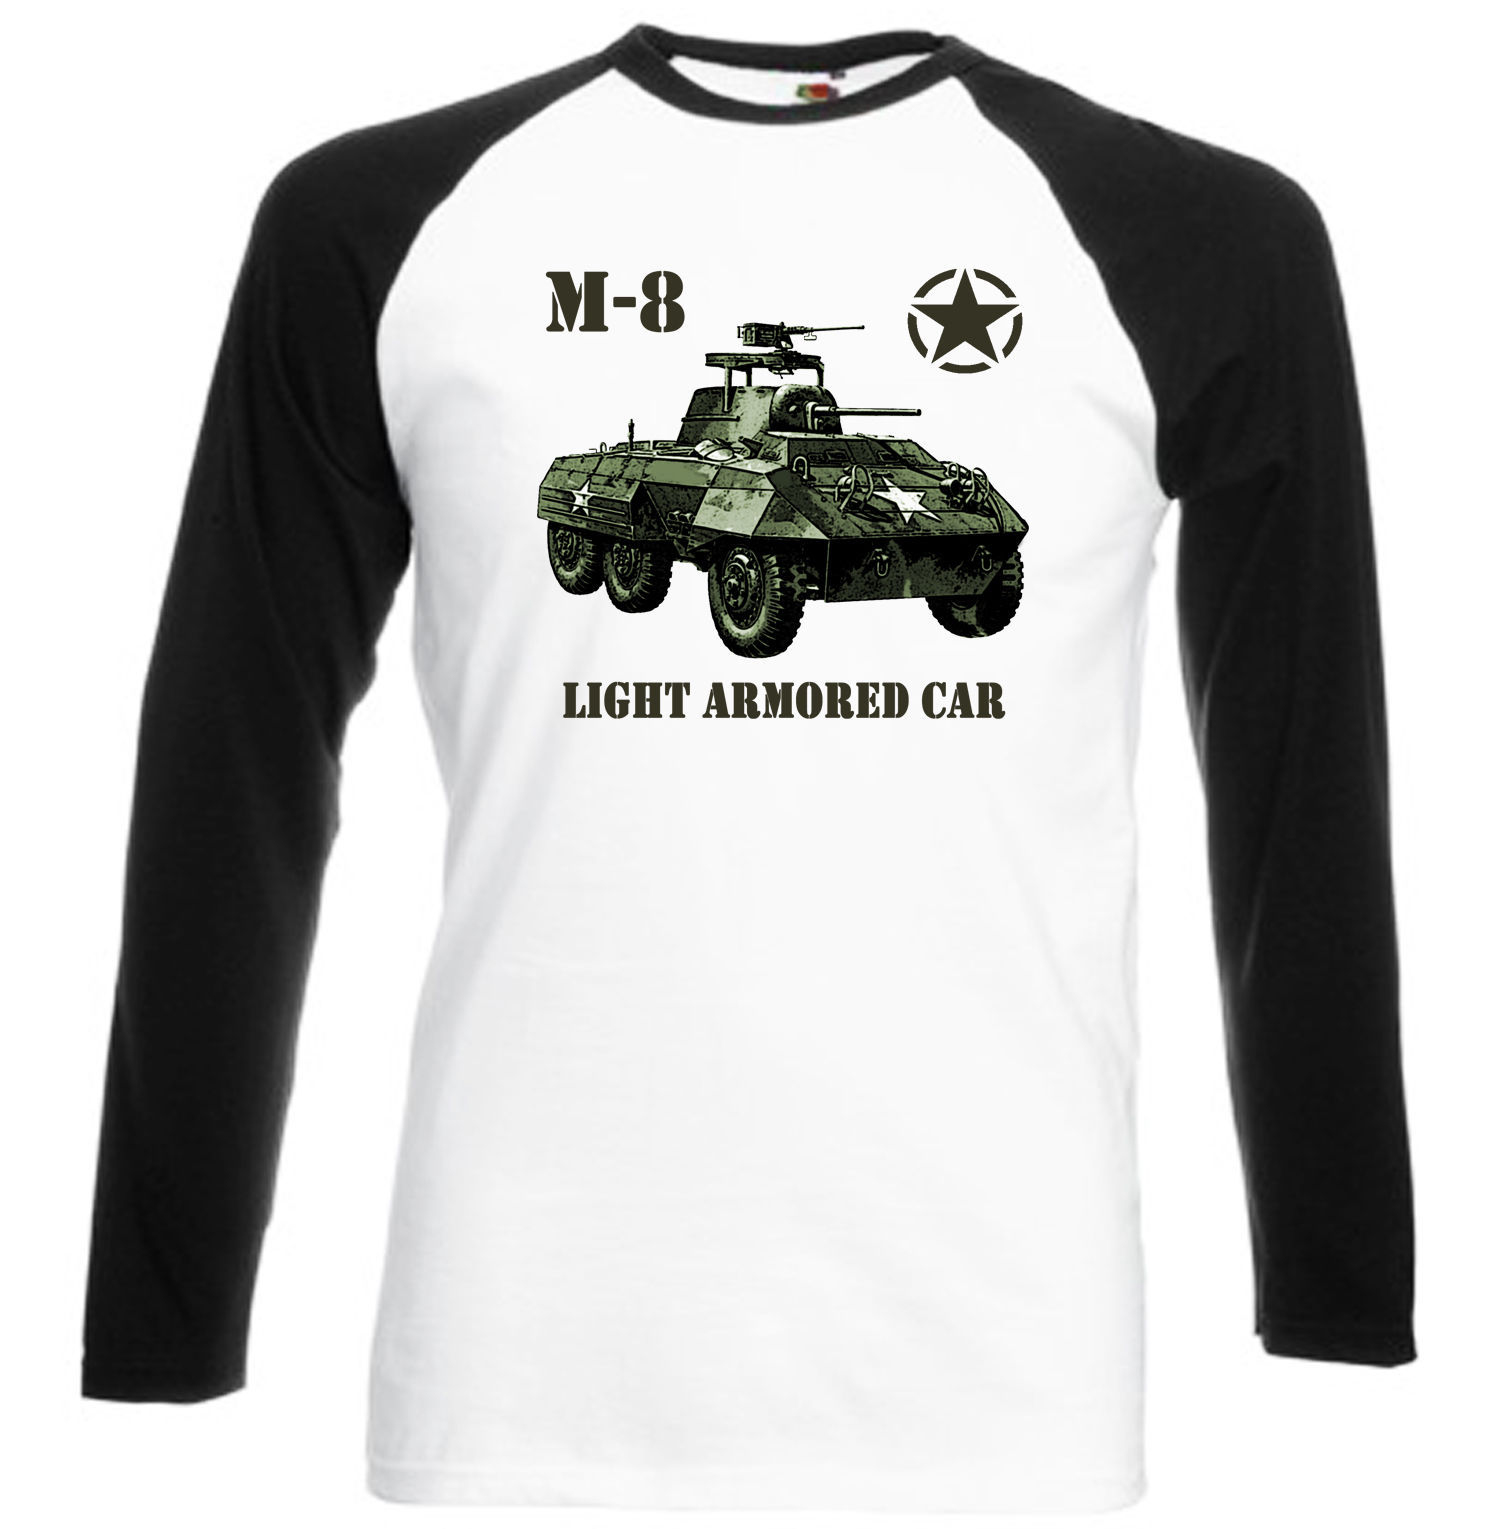 Primary image for M-8 LIGHT ARMORED CAR USA WWII - NEW BLACK SLEEVED BASEBALL TSHIRT S-M-L-XL-XXL